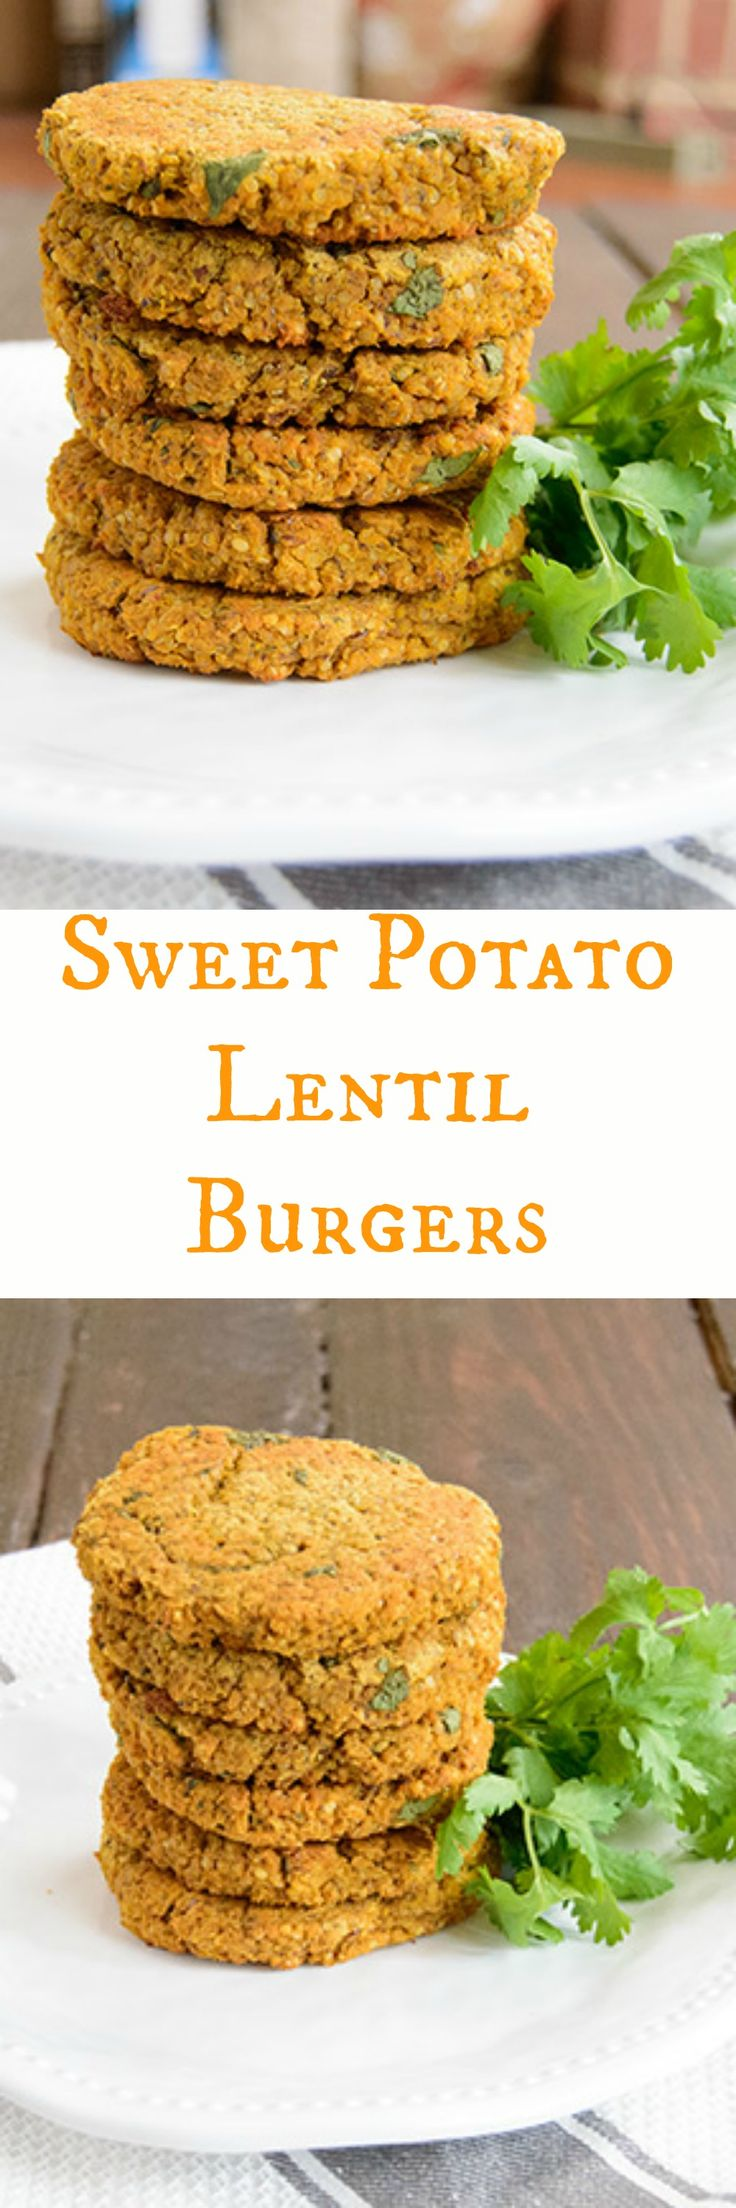 Easy Sweet Potato Lentil Burgers - this easy recipe is low fat, gluten free and vegan. These burgers are ready in no time!